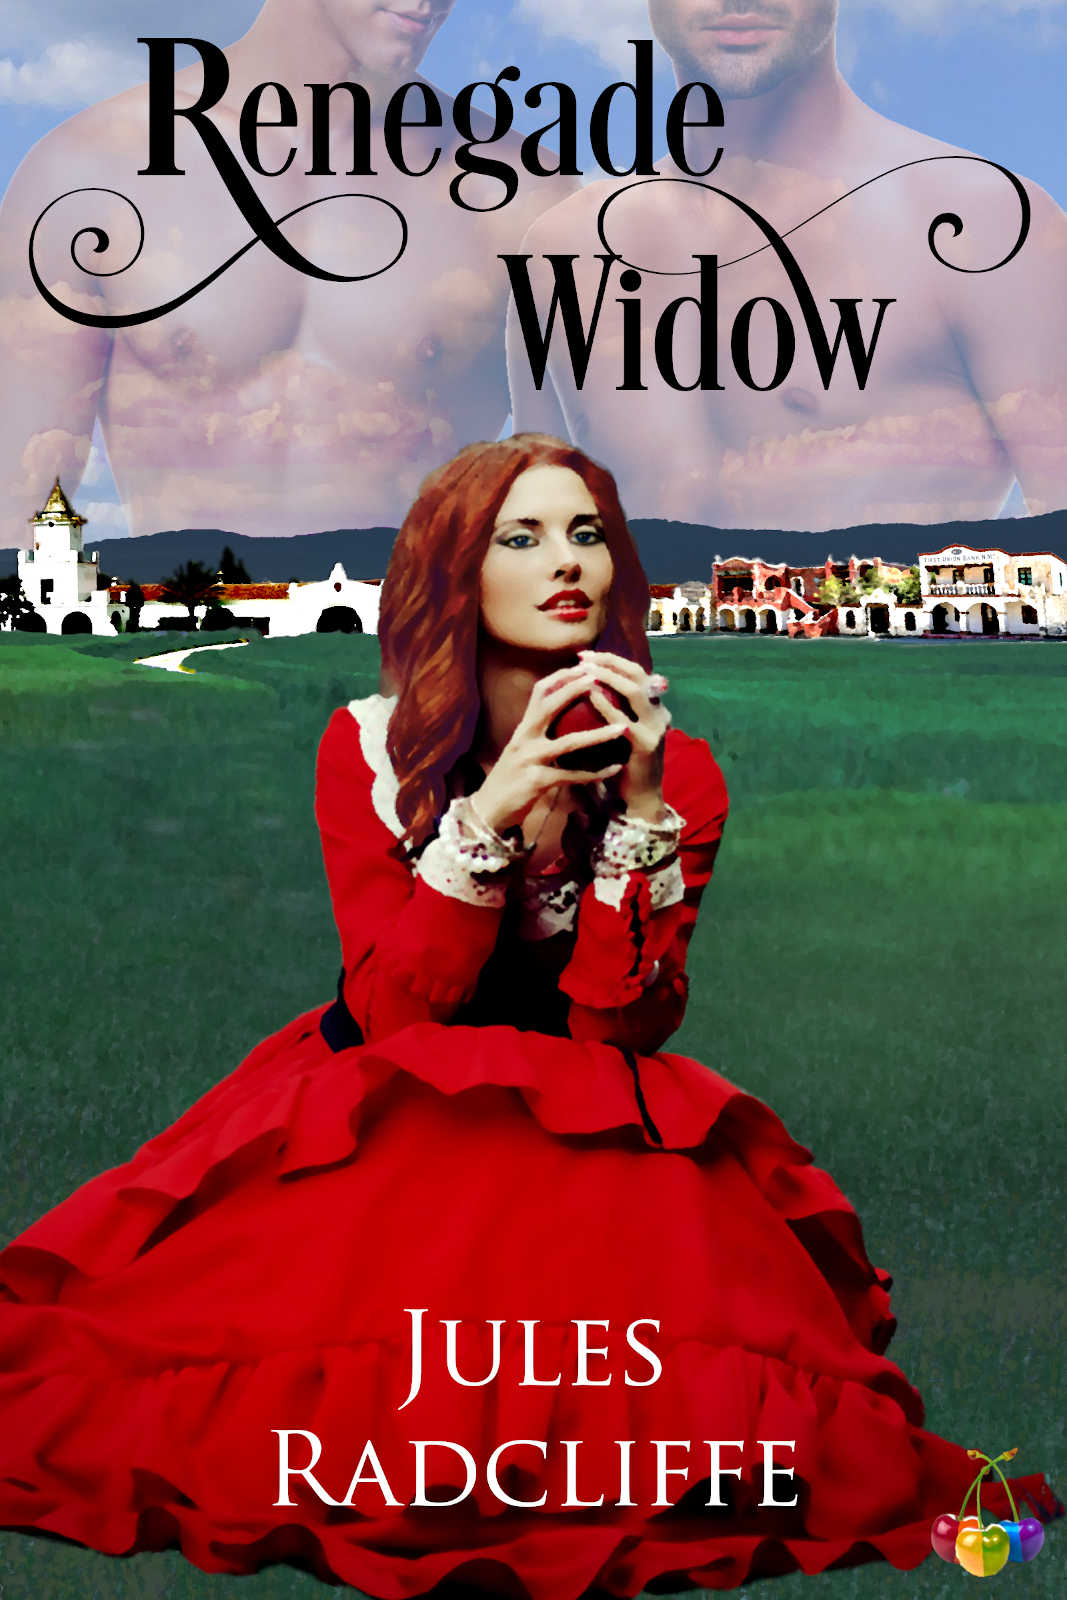 Cover of Renegade Widow by Jules Radcliffe